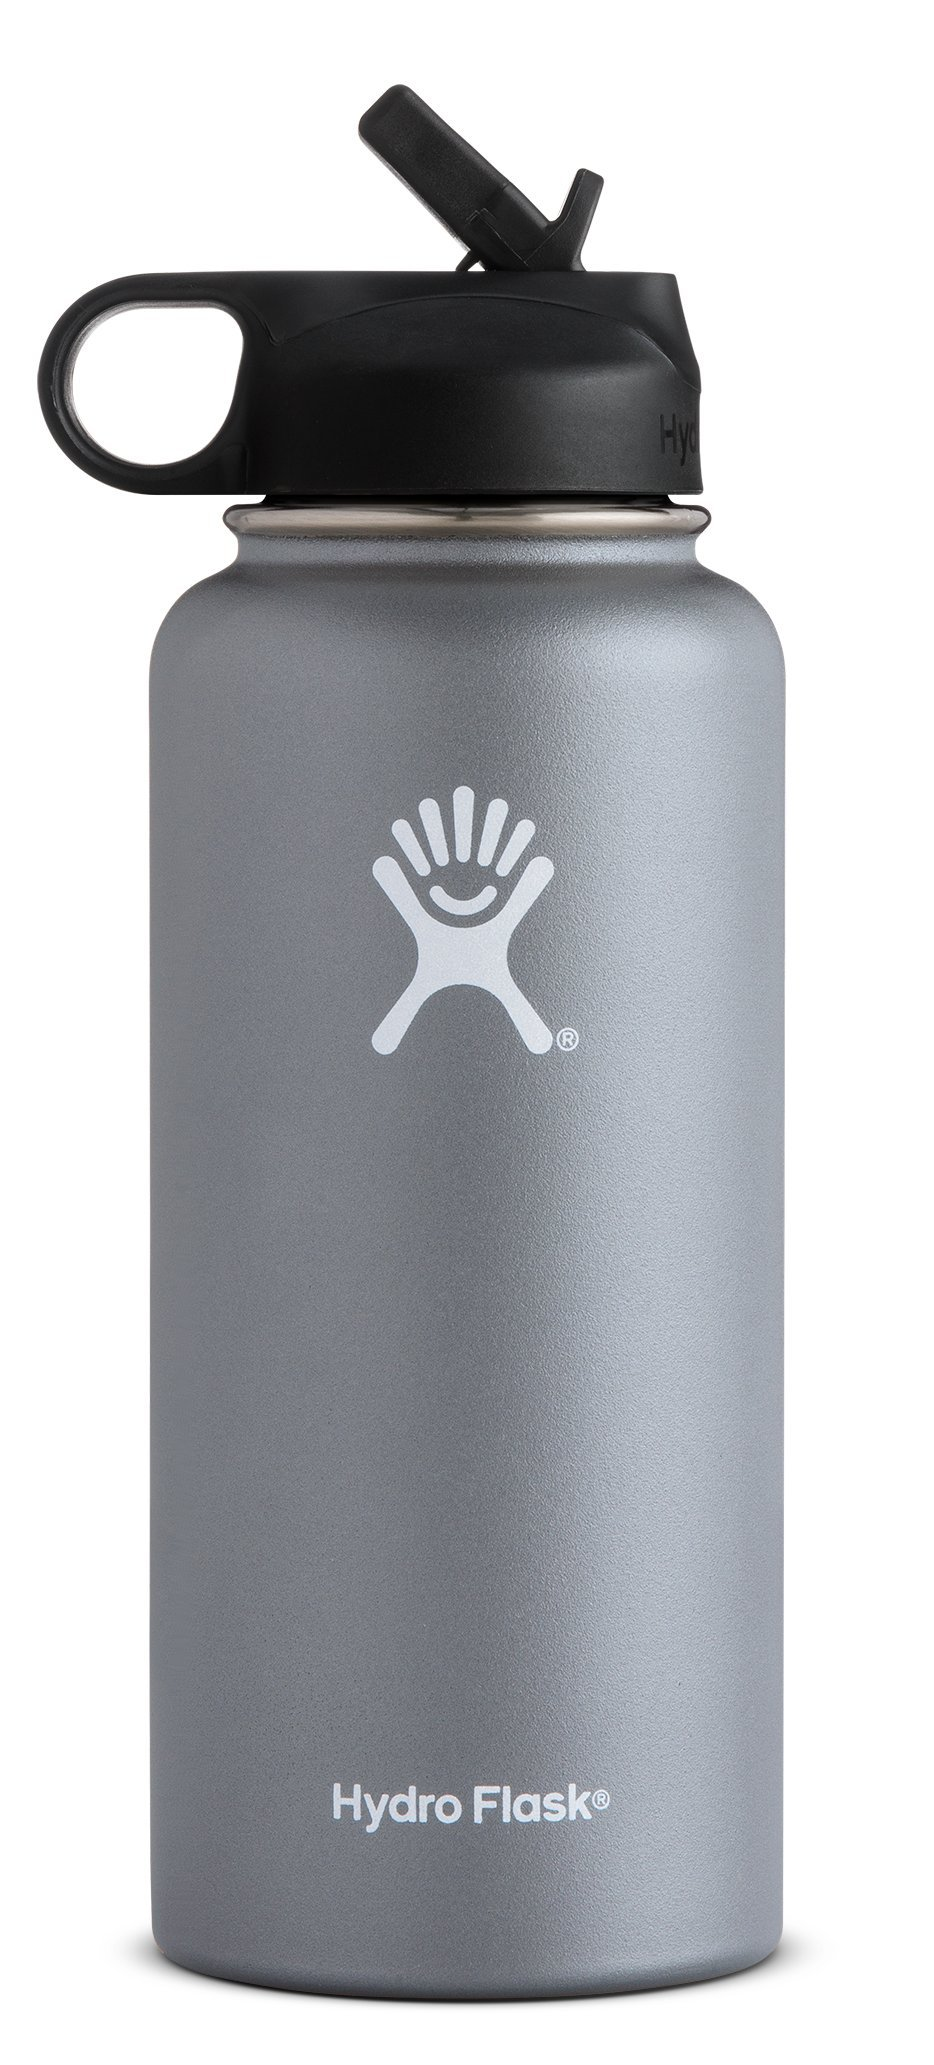 Hydro Flask Vacuum Insulated Stainless Steel Water Bottle Wide Mouth with Straw Lid (Graphite, 40-Ounce)